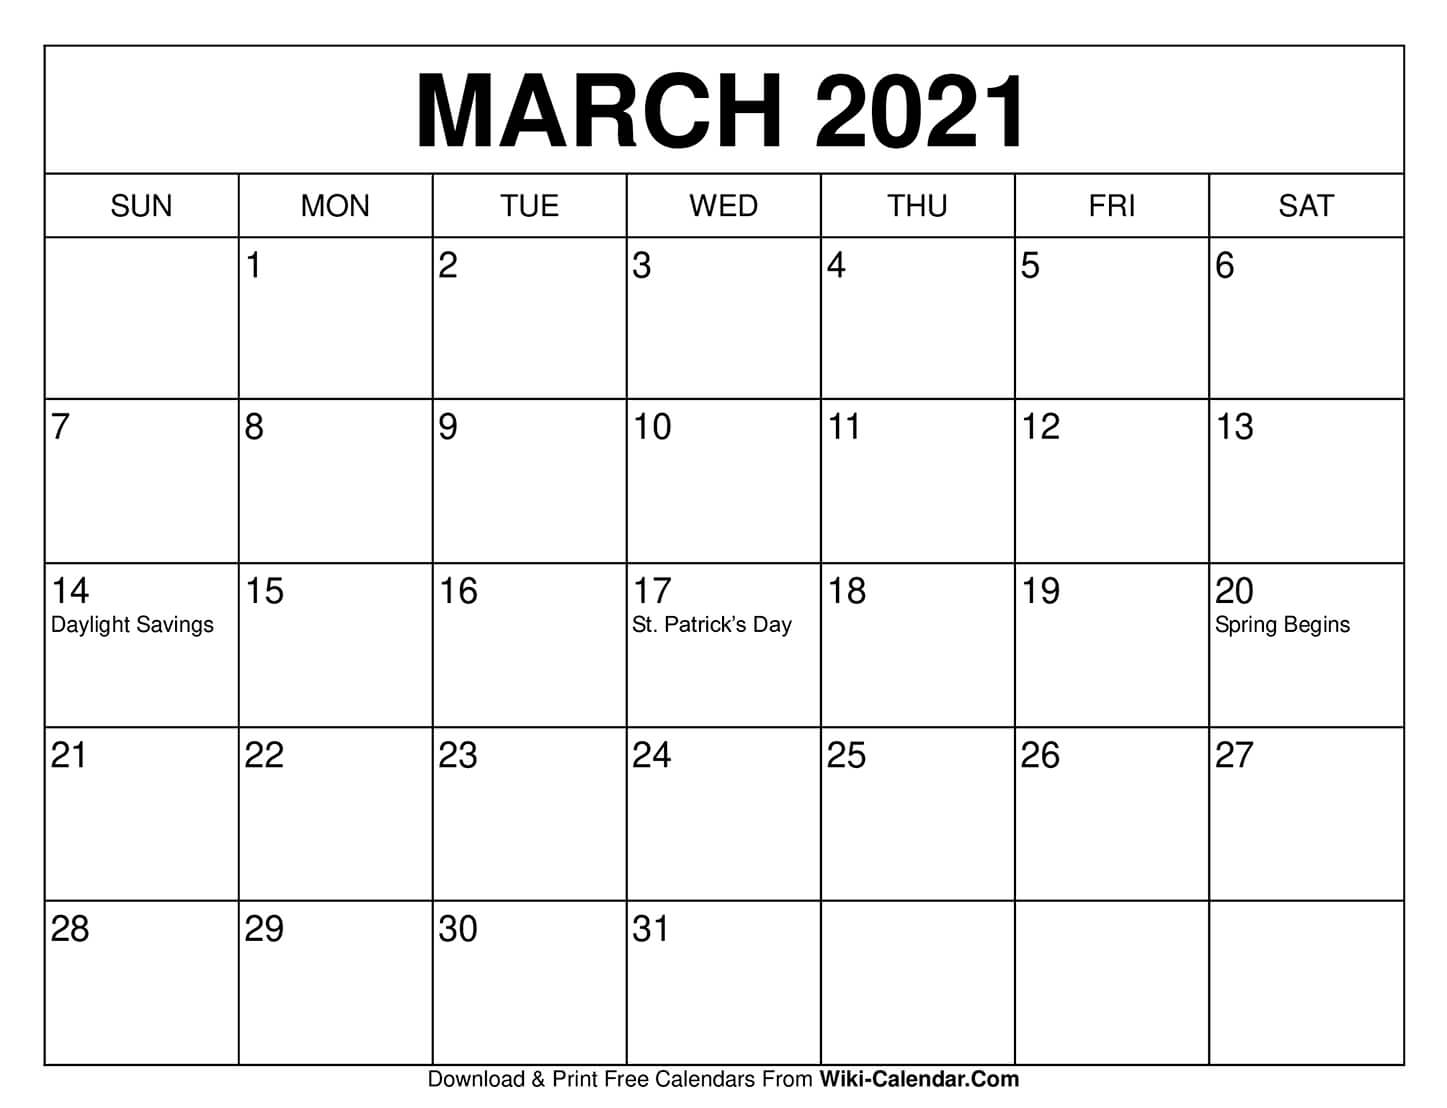 Free Print Calendars March 2021